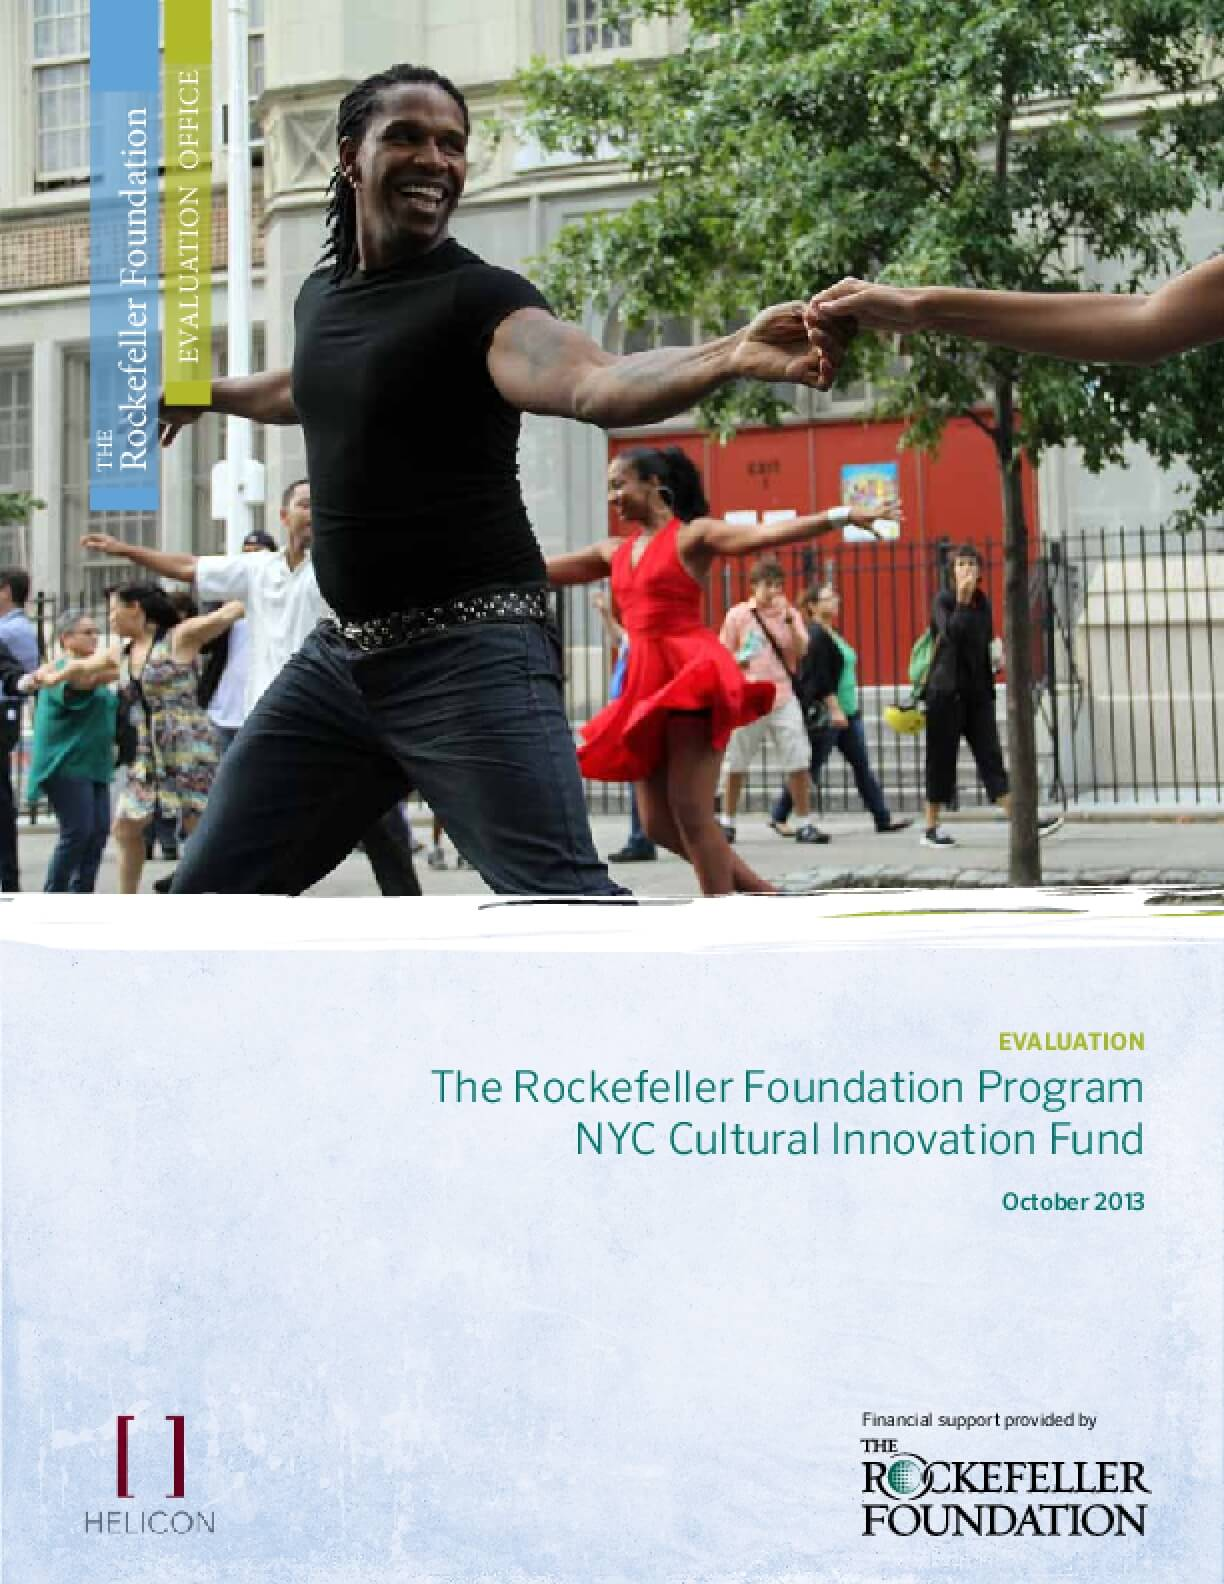 The Rockefeller Foundation Program NYC Cultural Innovation Fund: Evaluation